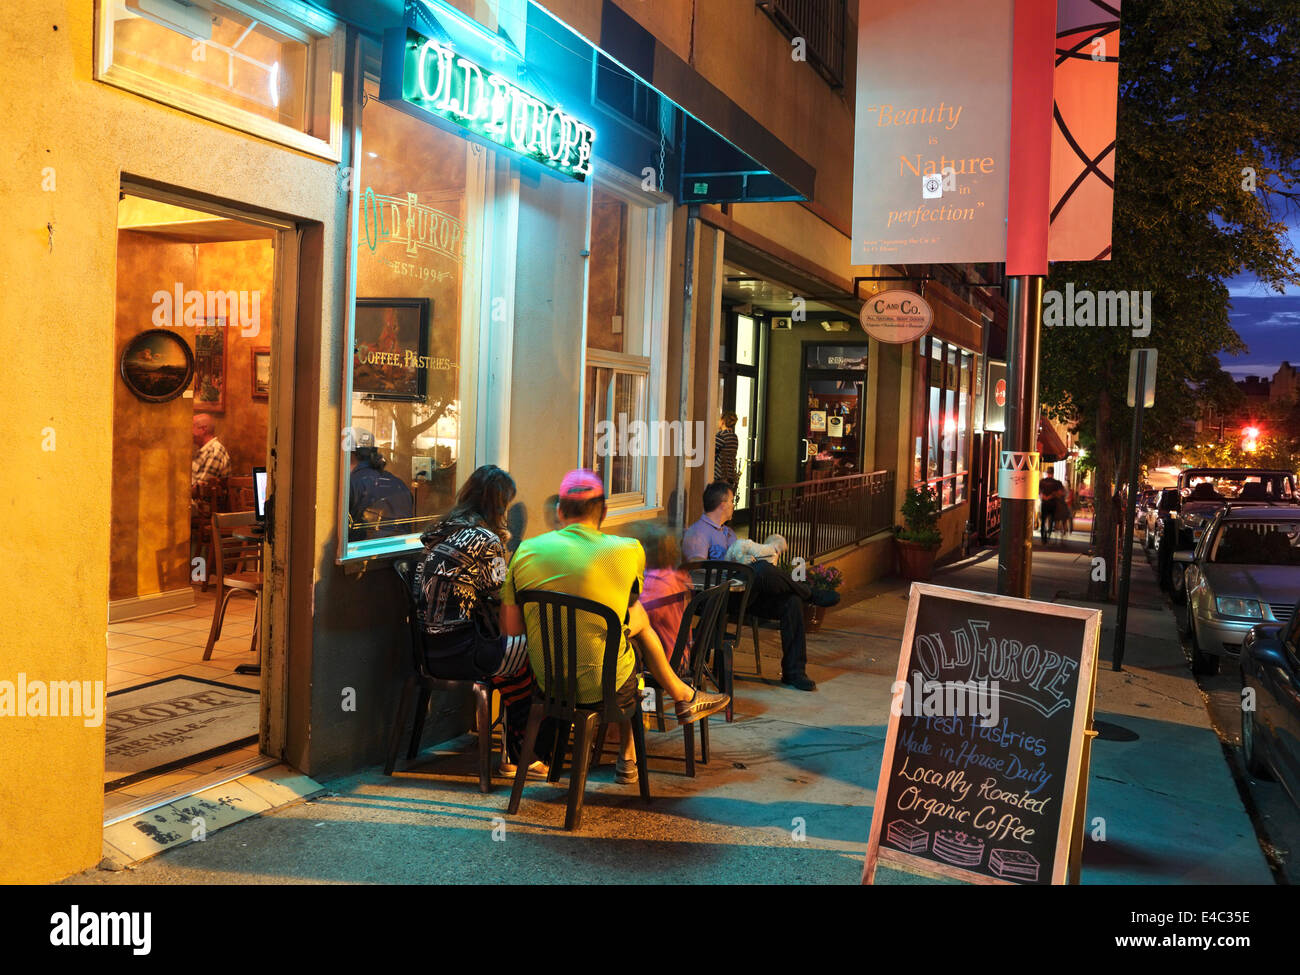 Asheville, North Carolina. People outside café at night. - Stock Image